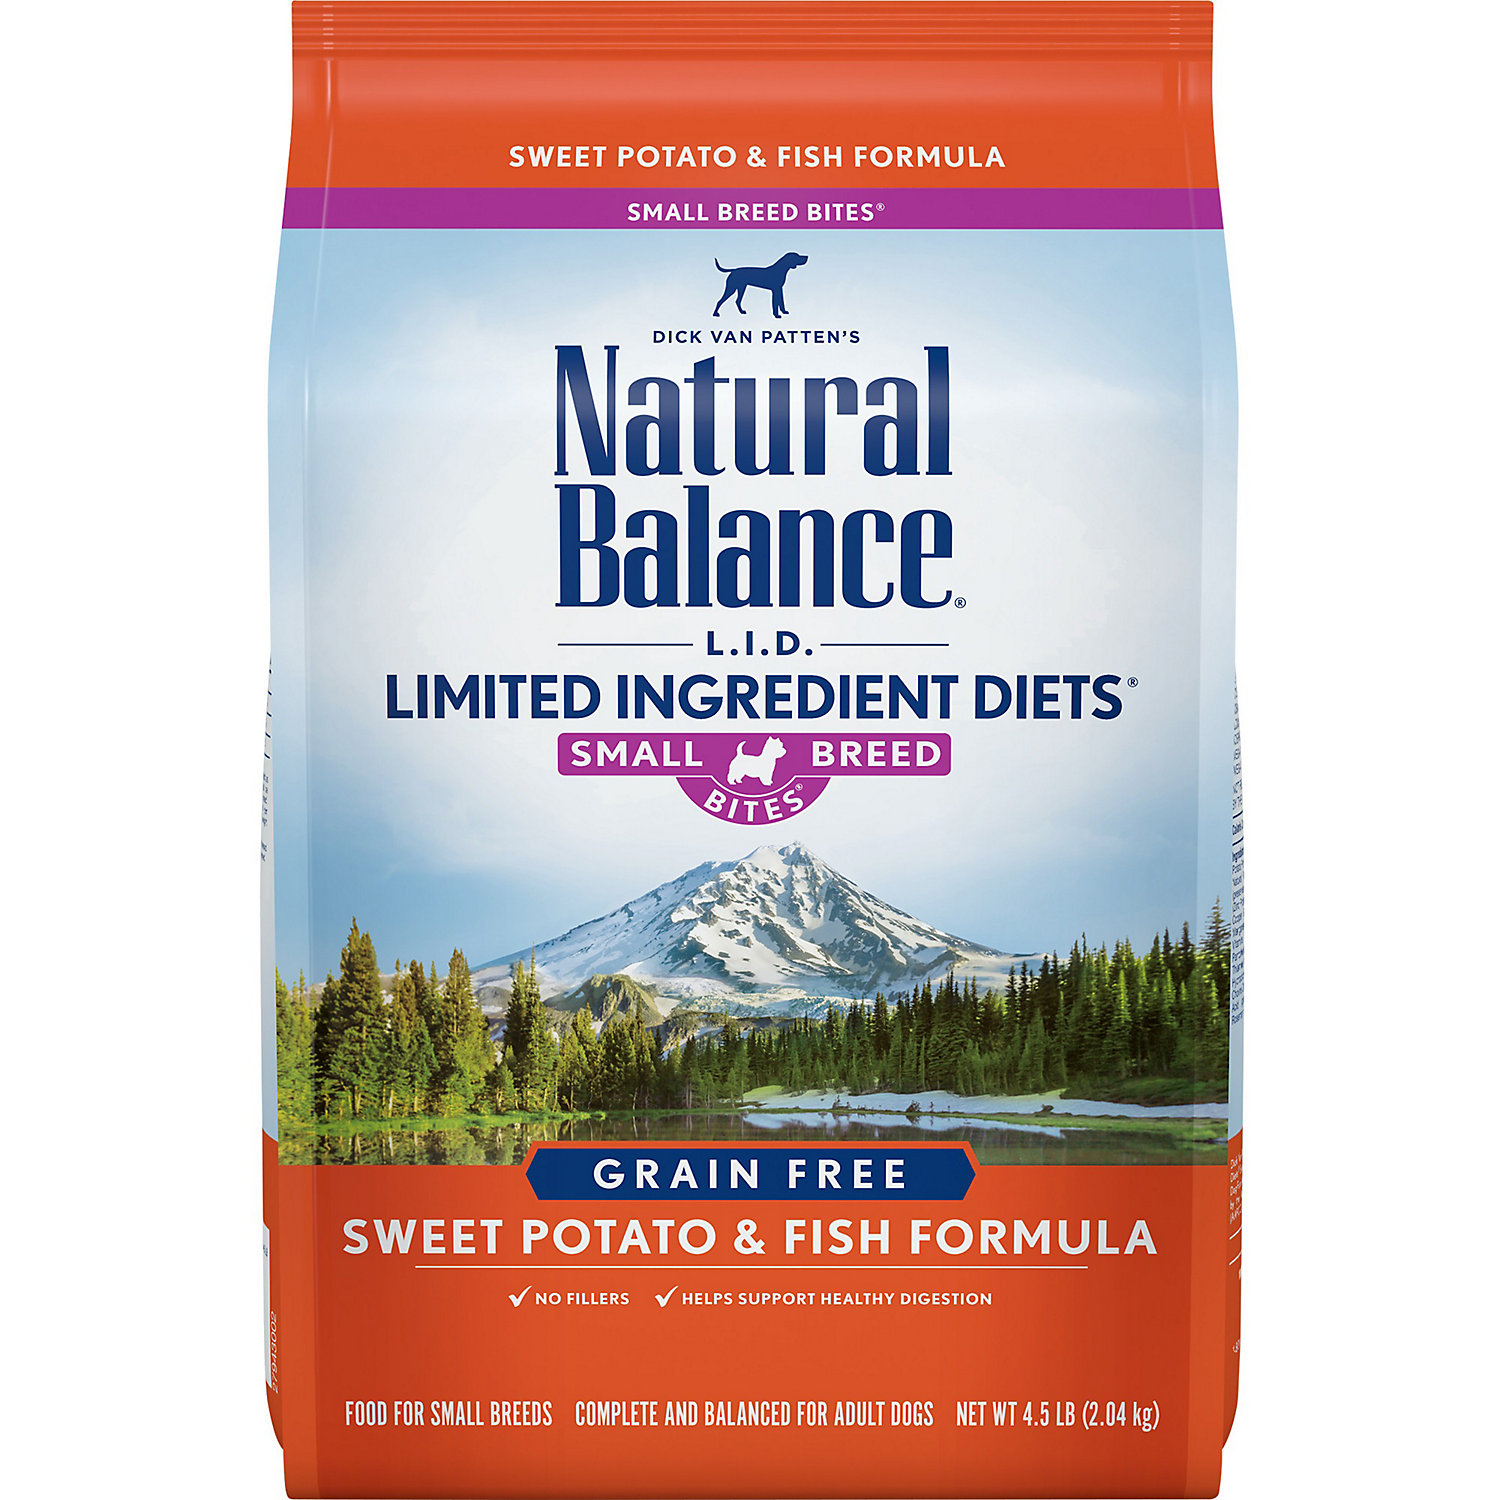 Natural Balance L.i.d. Limited Ingredient Diets Sweet Potato Fish Small Breed Bites Dog Food 4.5 Lbs.